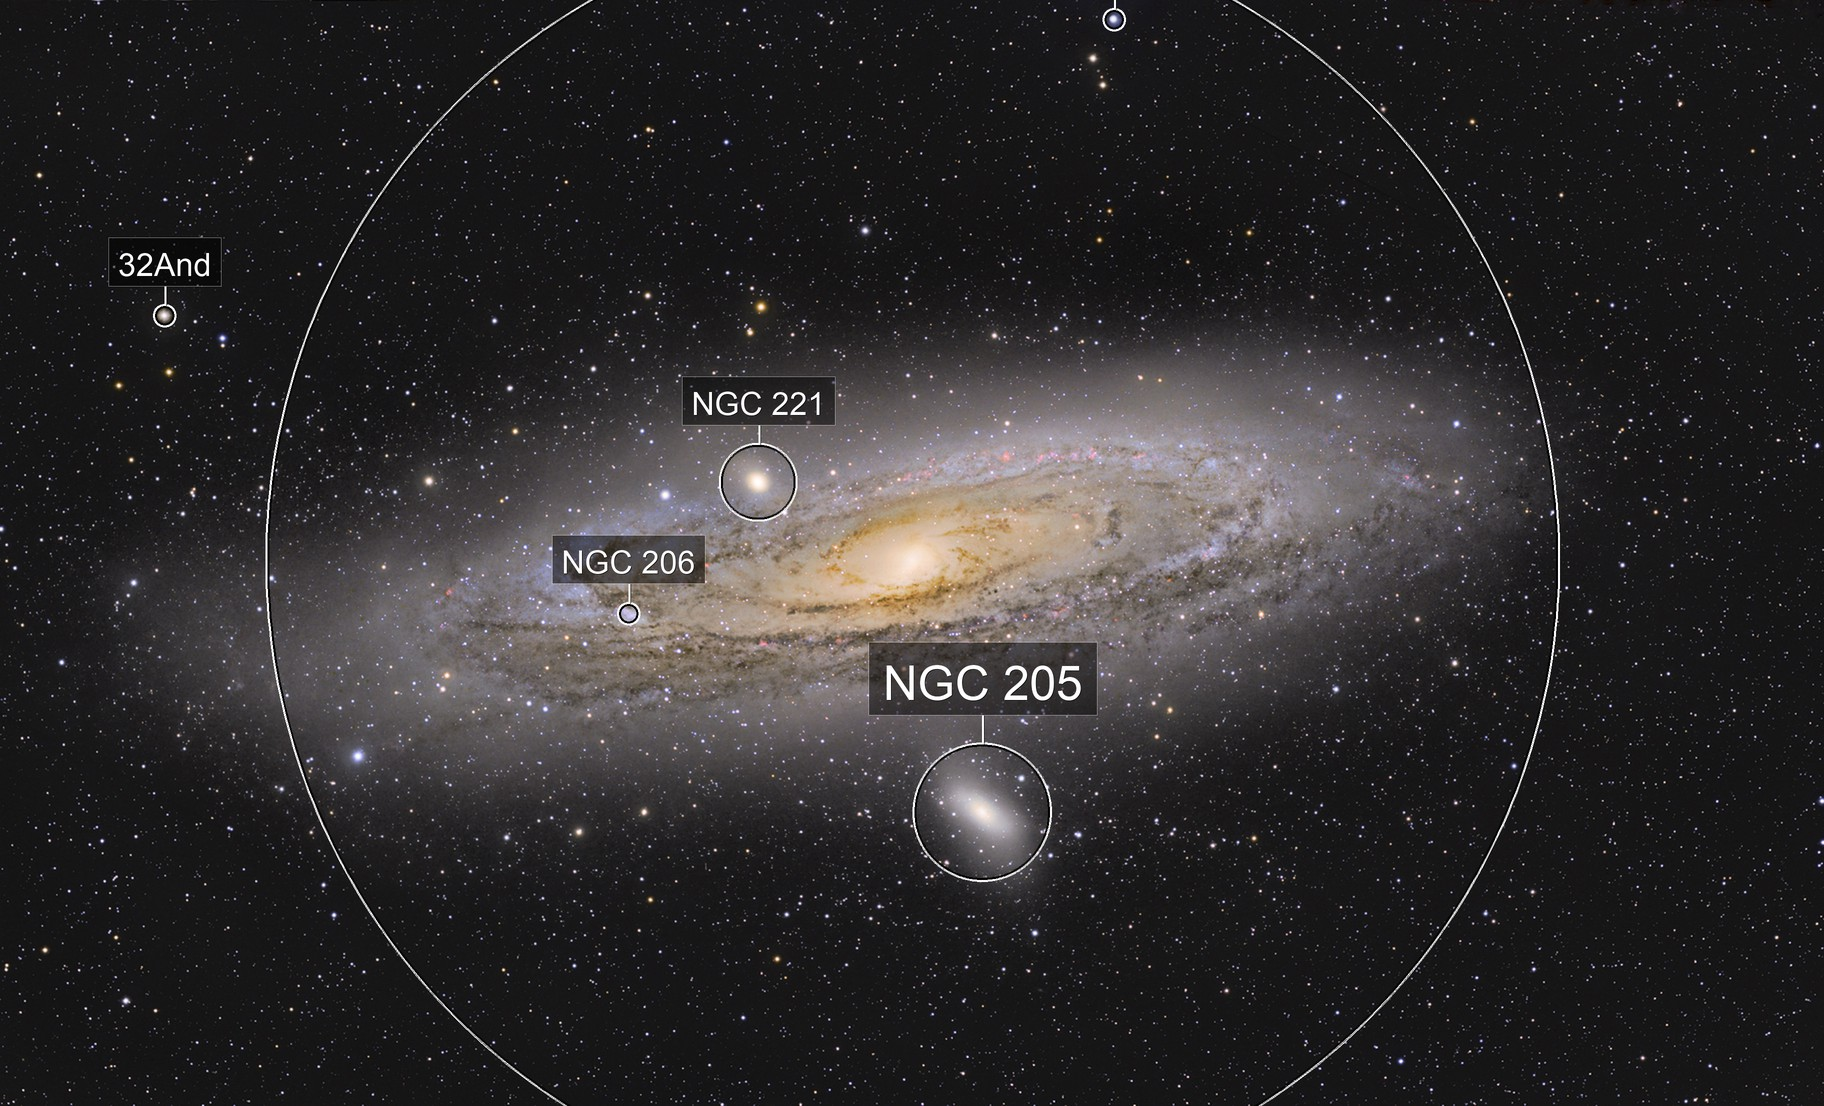 M31 and its outer regions.